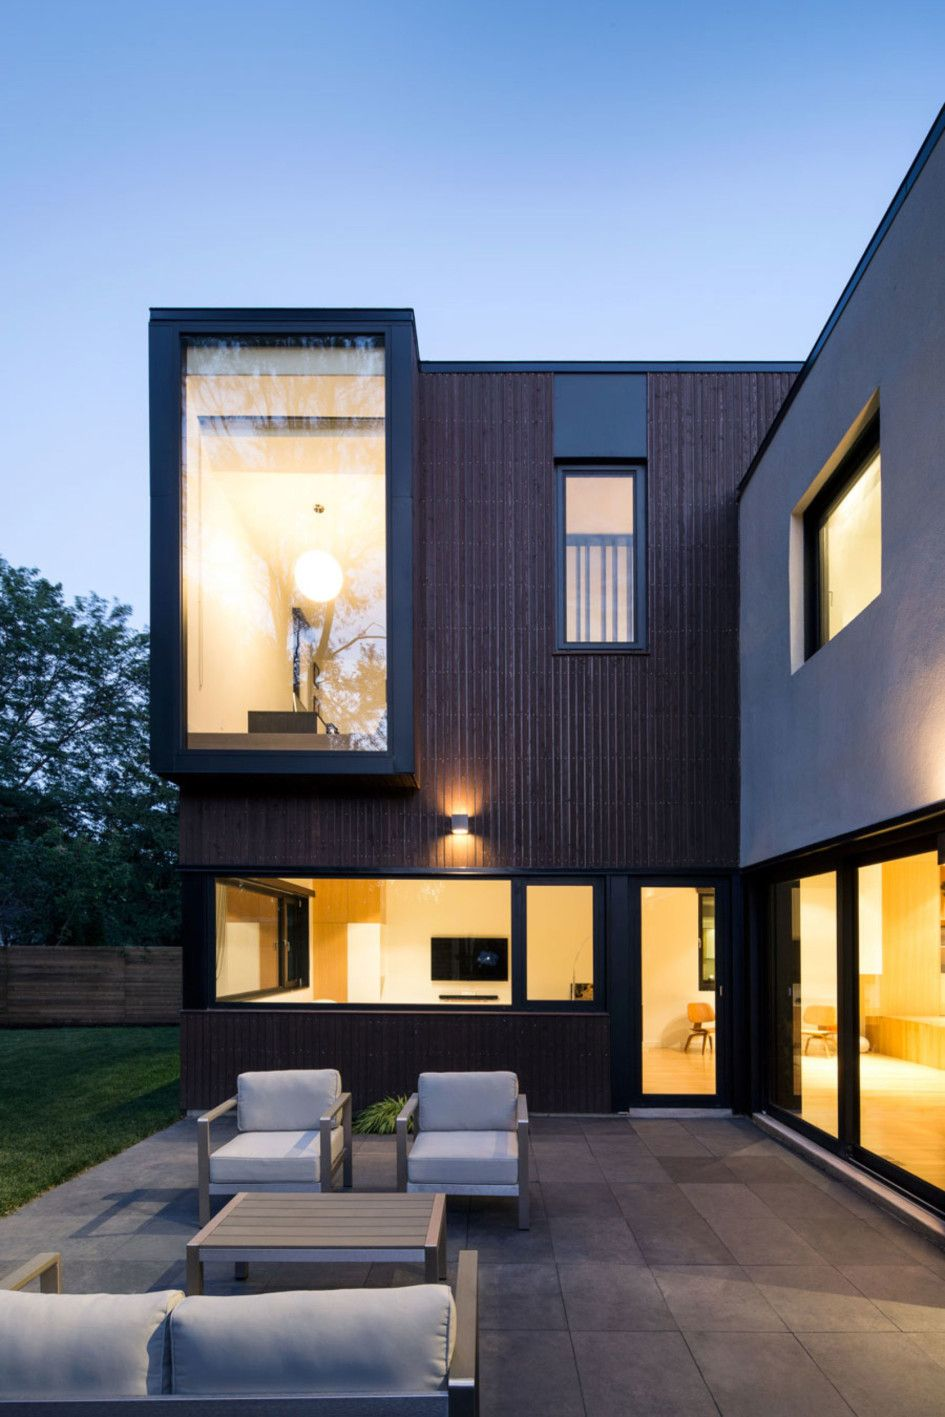 Architecture marvelous home remodeling ideas of connaught resident